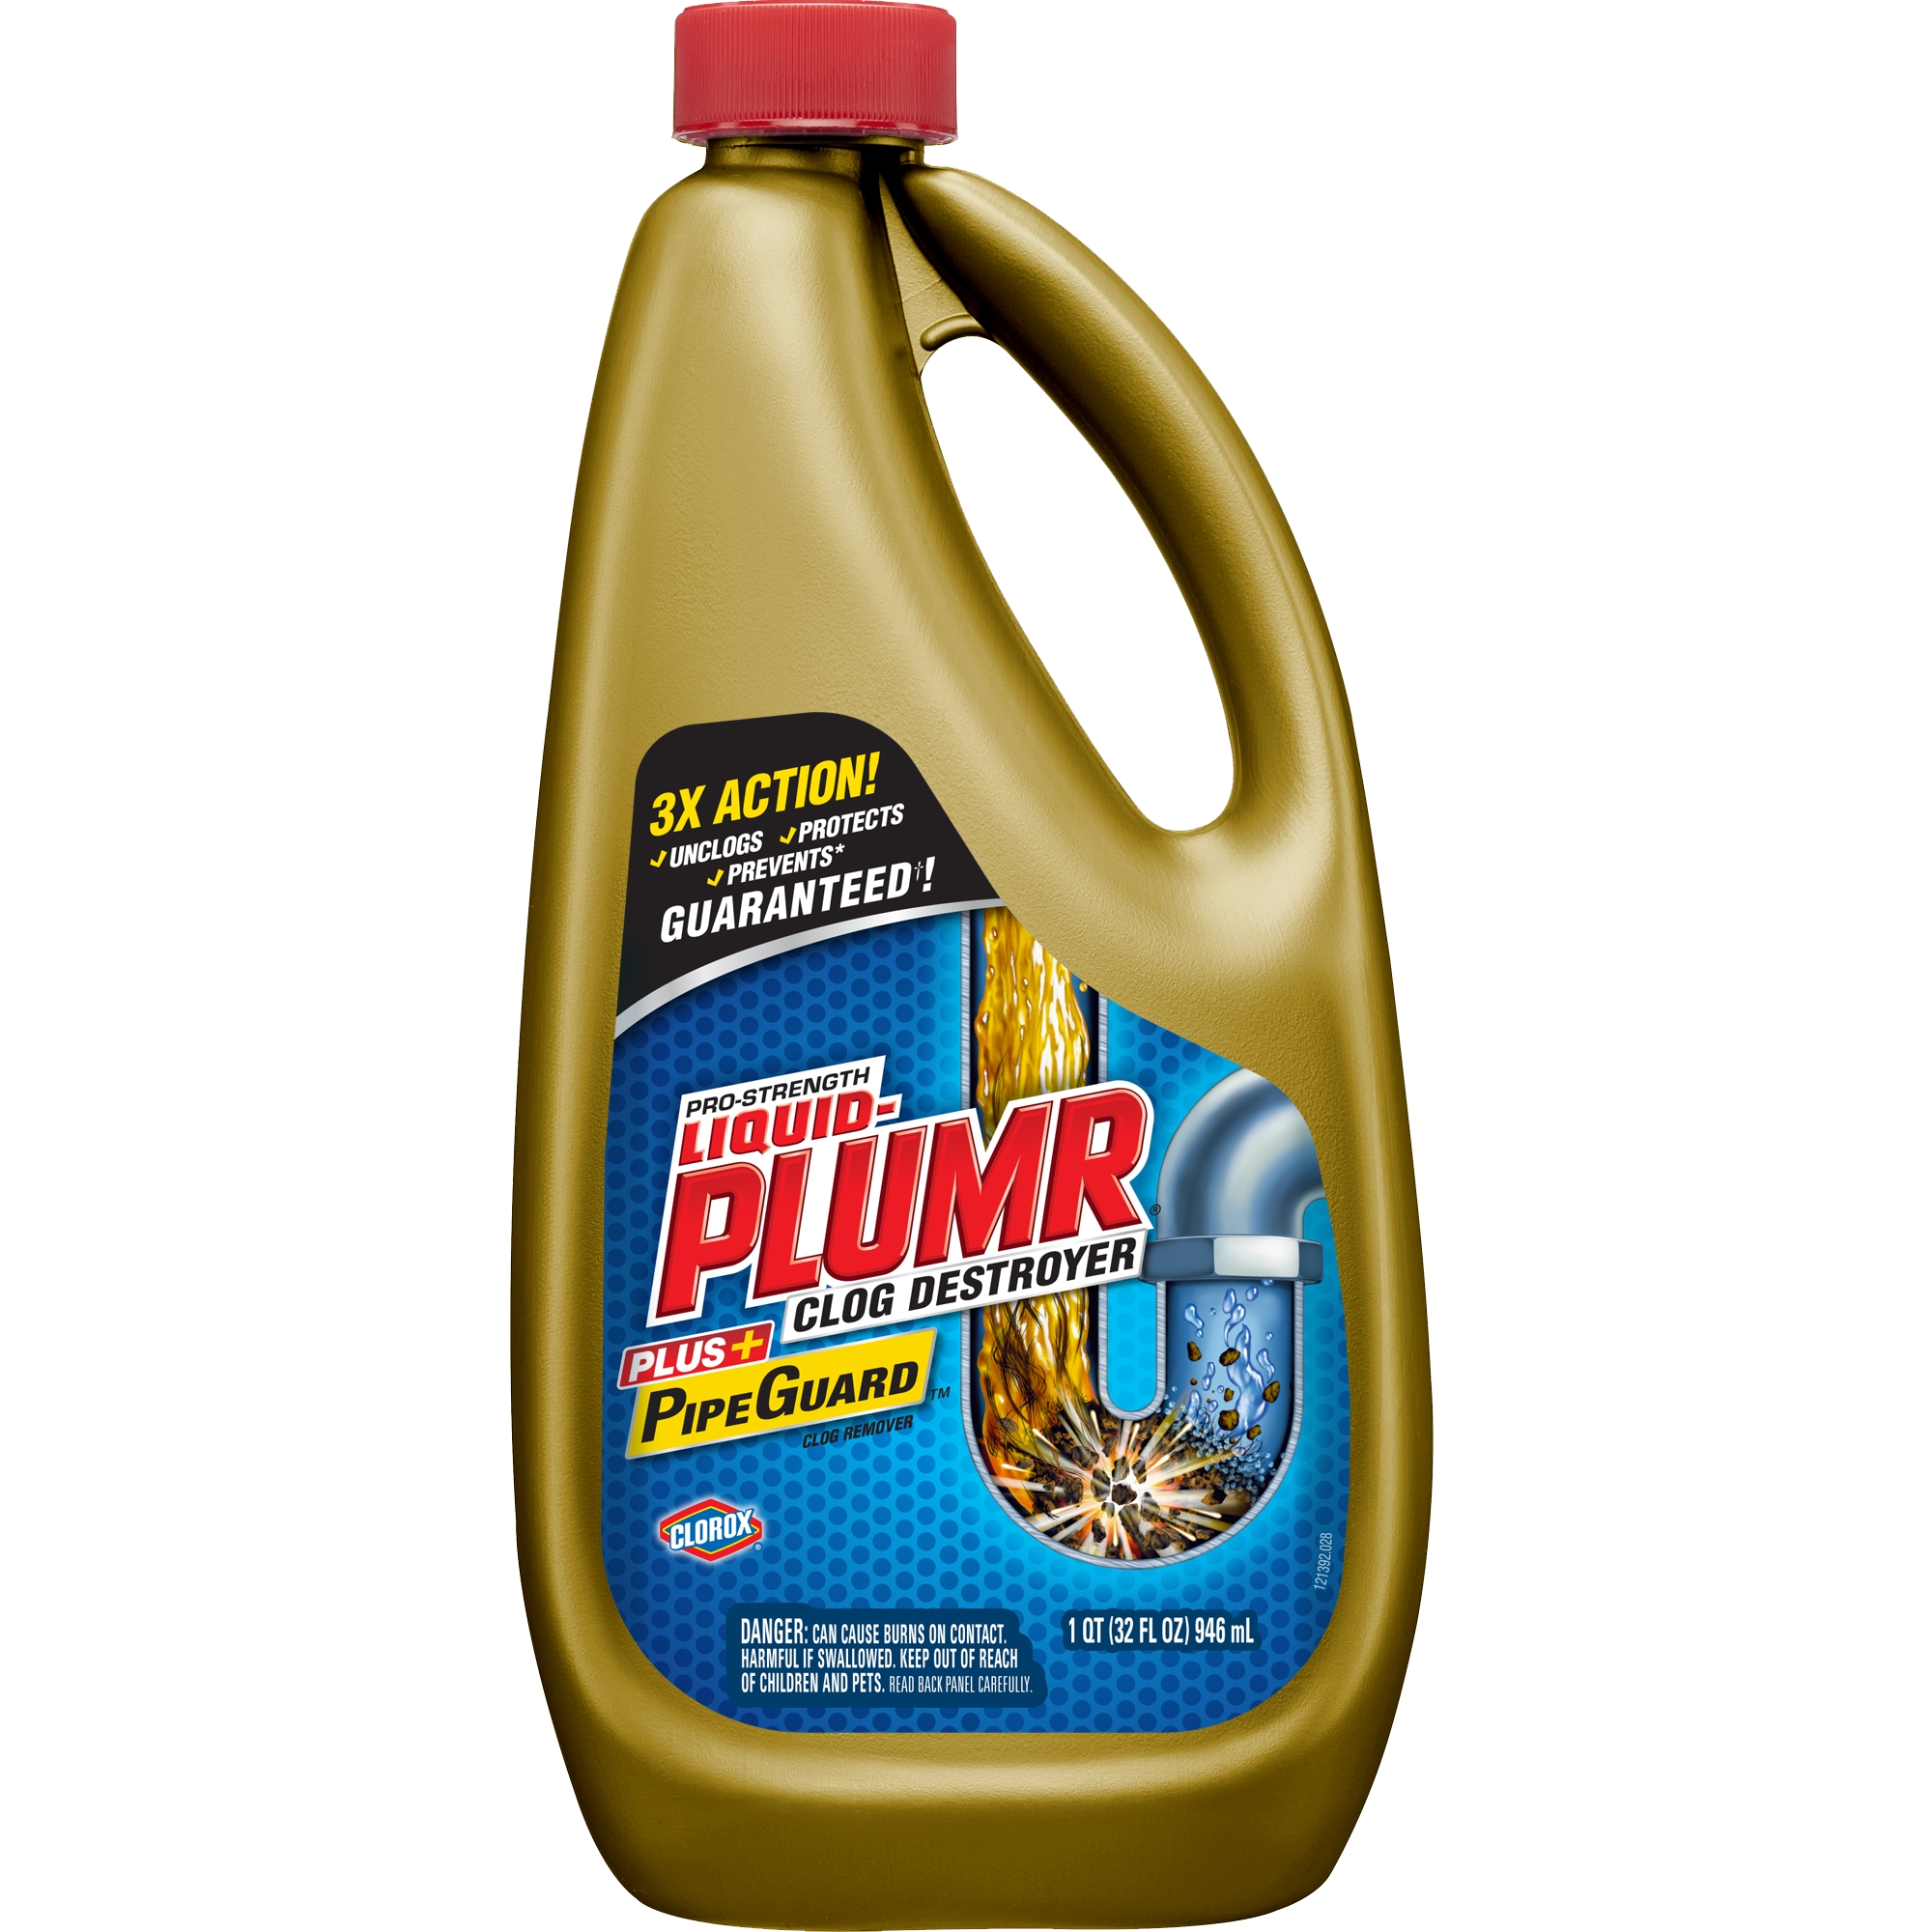 Liquid-Plumr Pro-Strength Full Clog Destroyer Plus PipeGuard, 32 oz